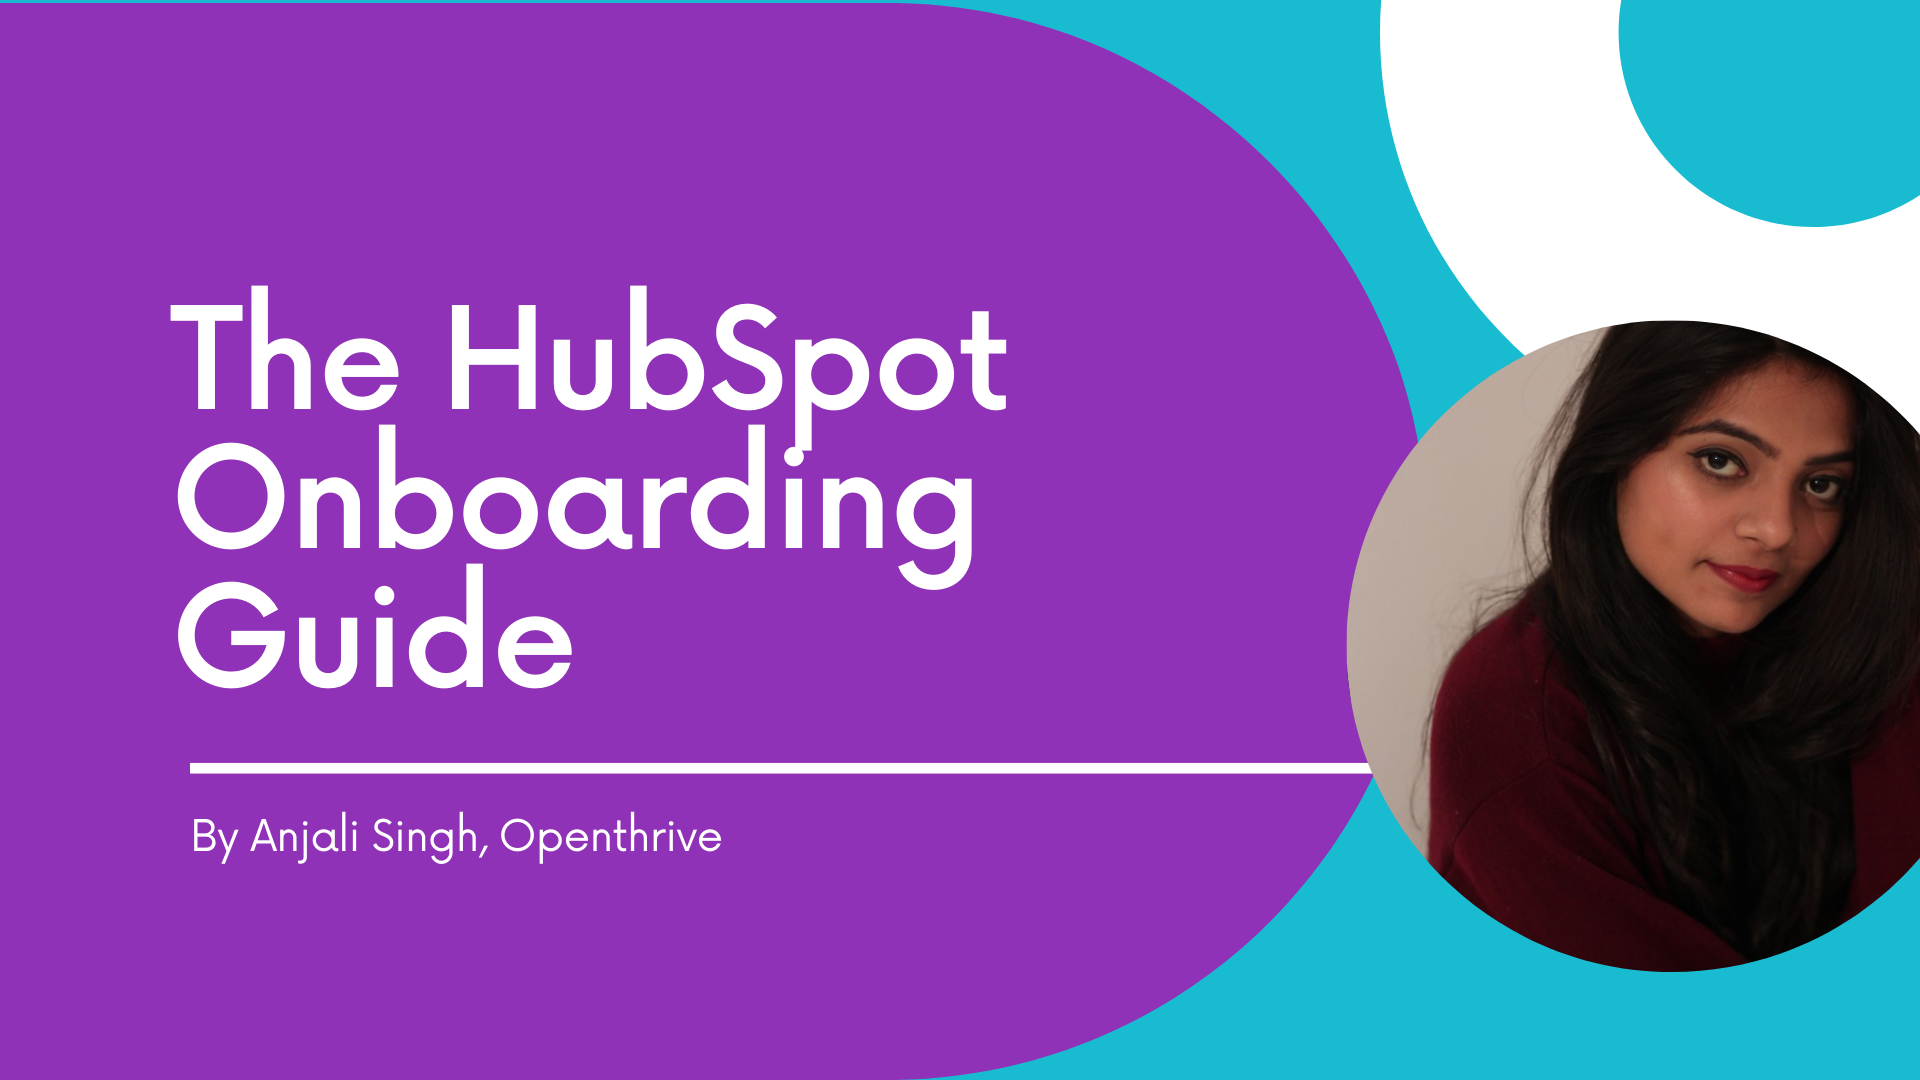 The HubSpot Onboarding Guide